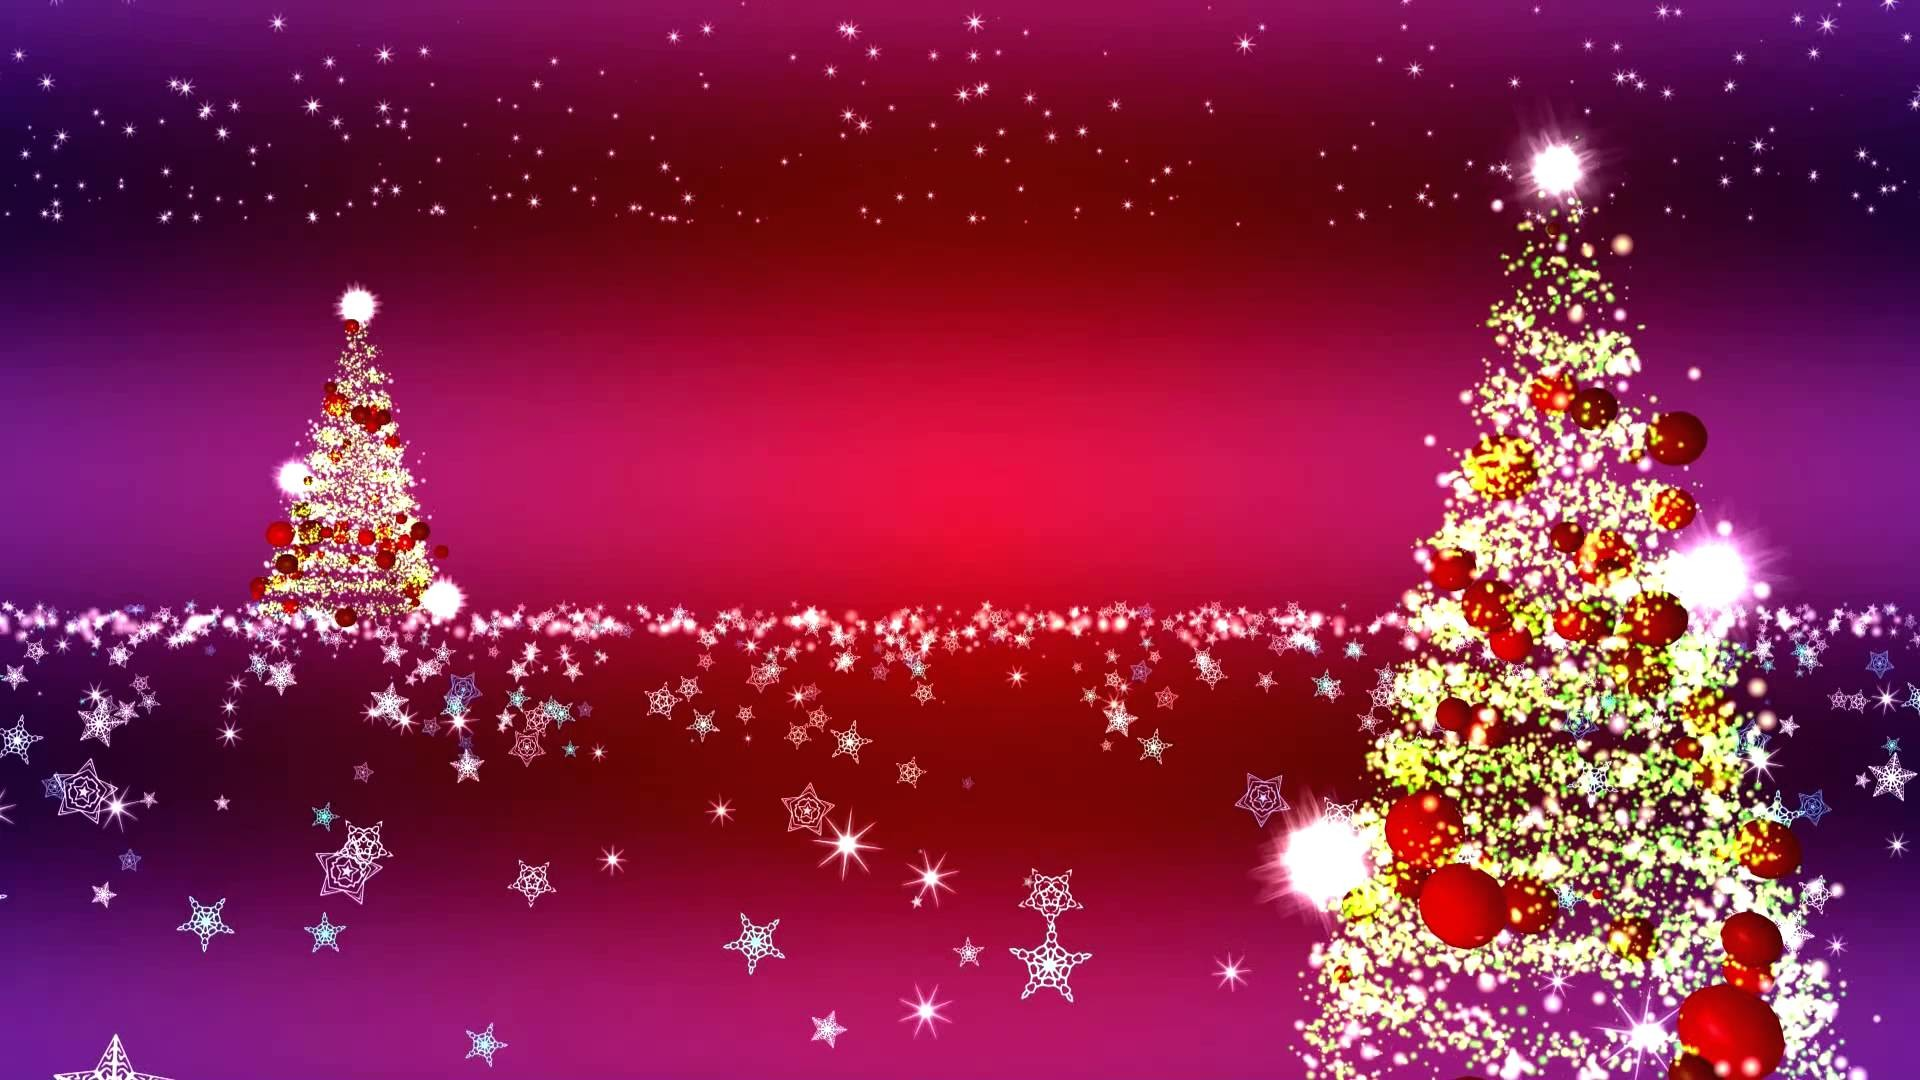 2015 Christmas background hd wallpapers, images, photos, pictures